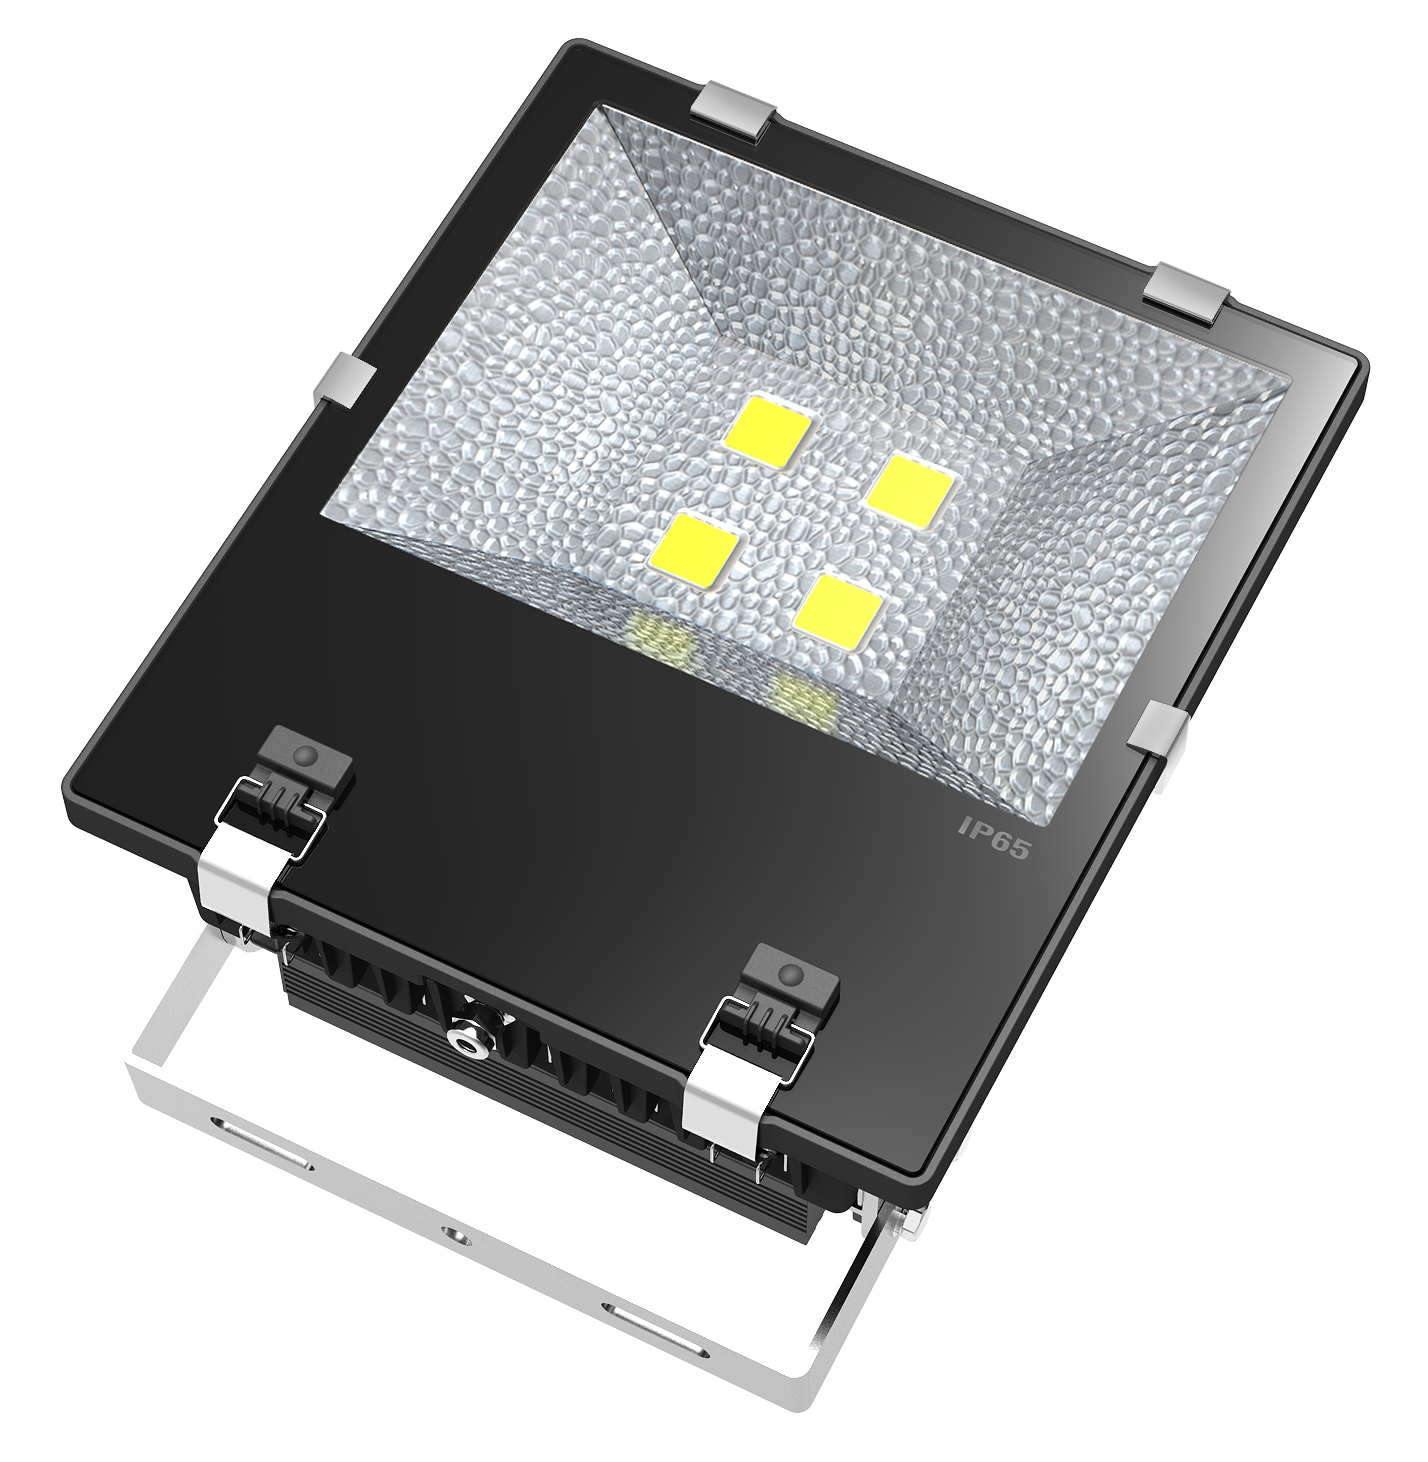 FL-10W 30W 50W 100W 200W 400W|Flood LED(New).The switch to high-performance GLLL LED lighting gives environments more flexible lighting control and also achieves substantial power savings.